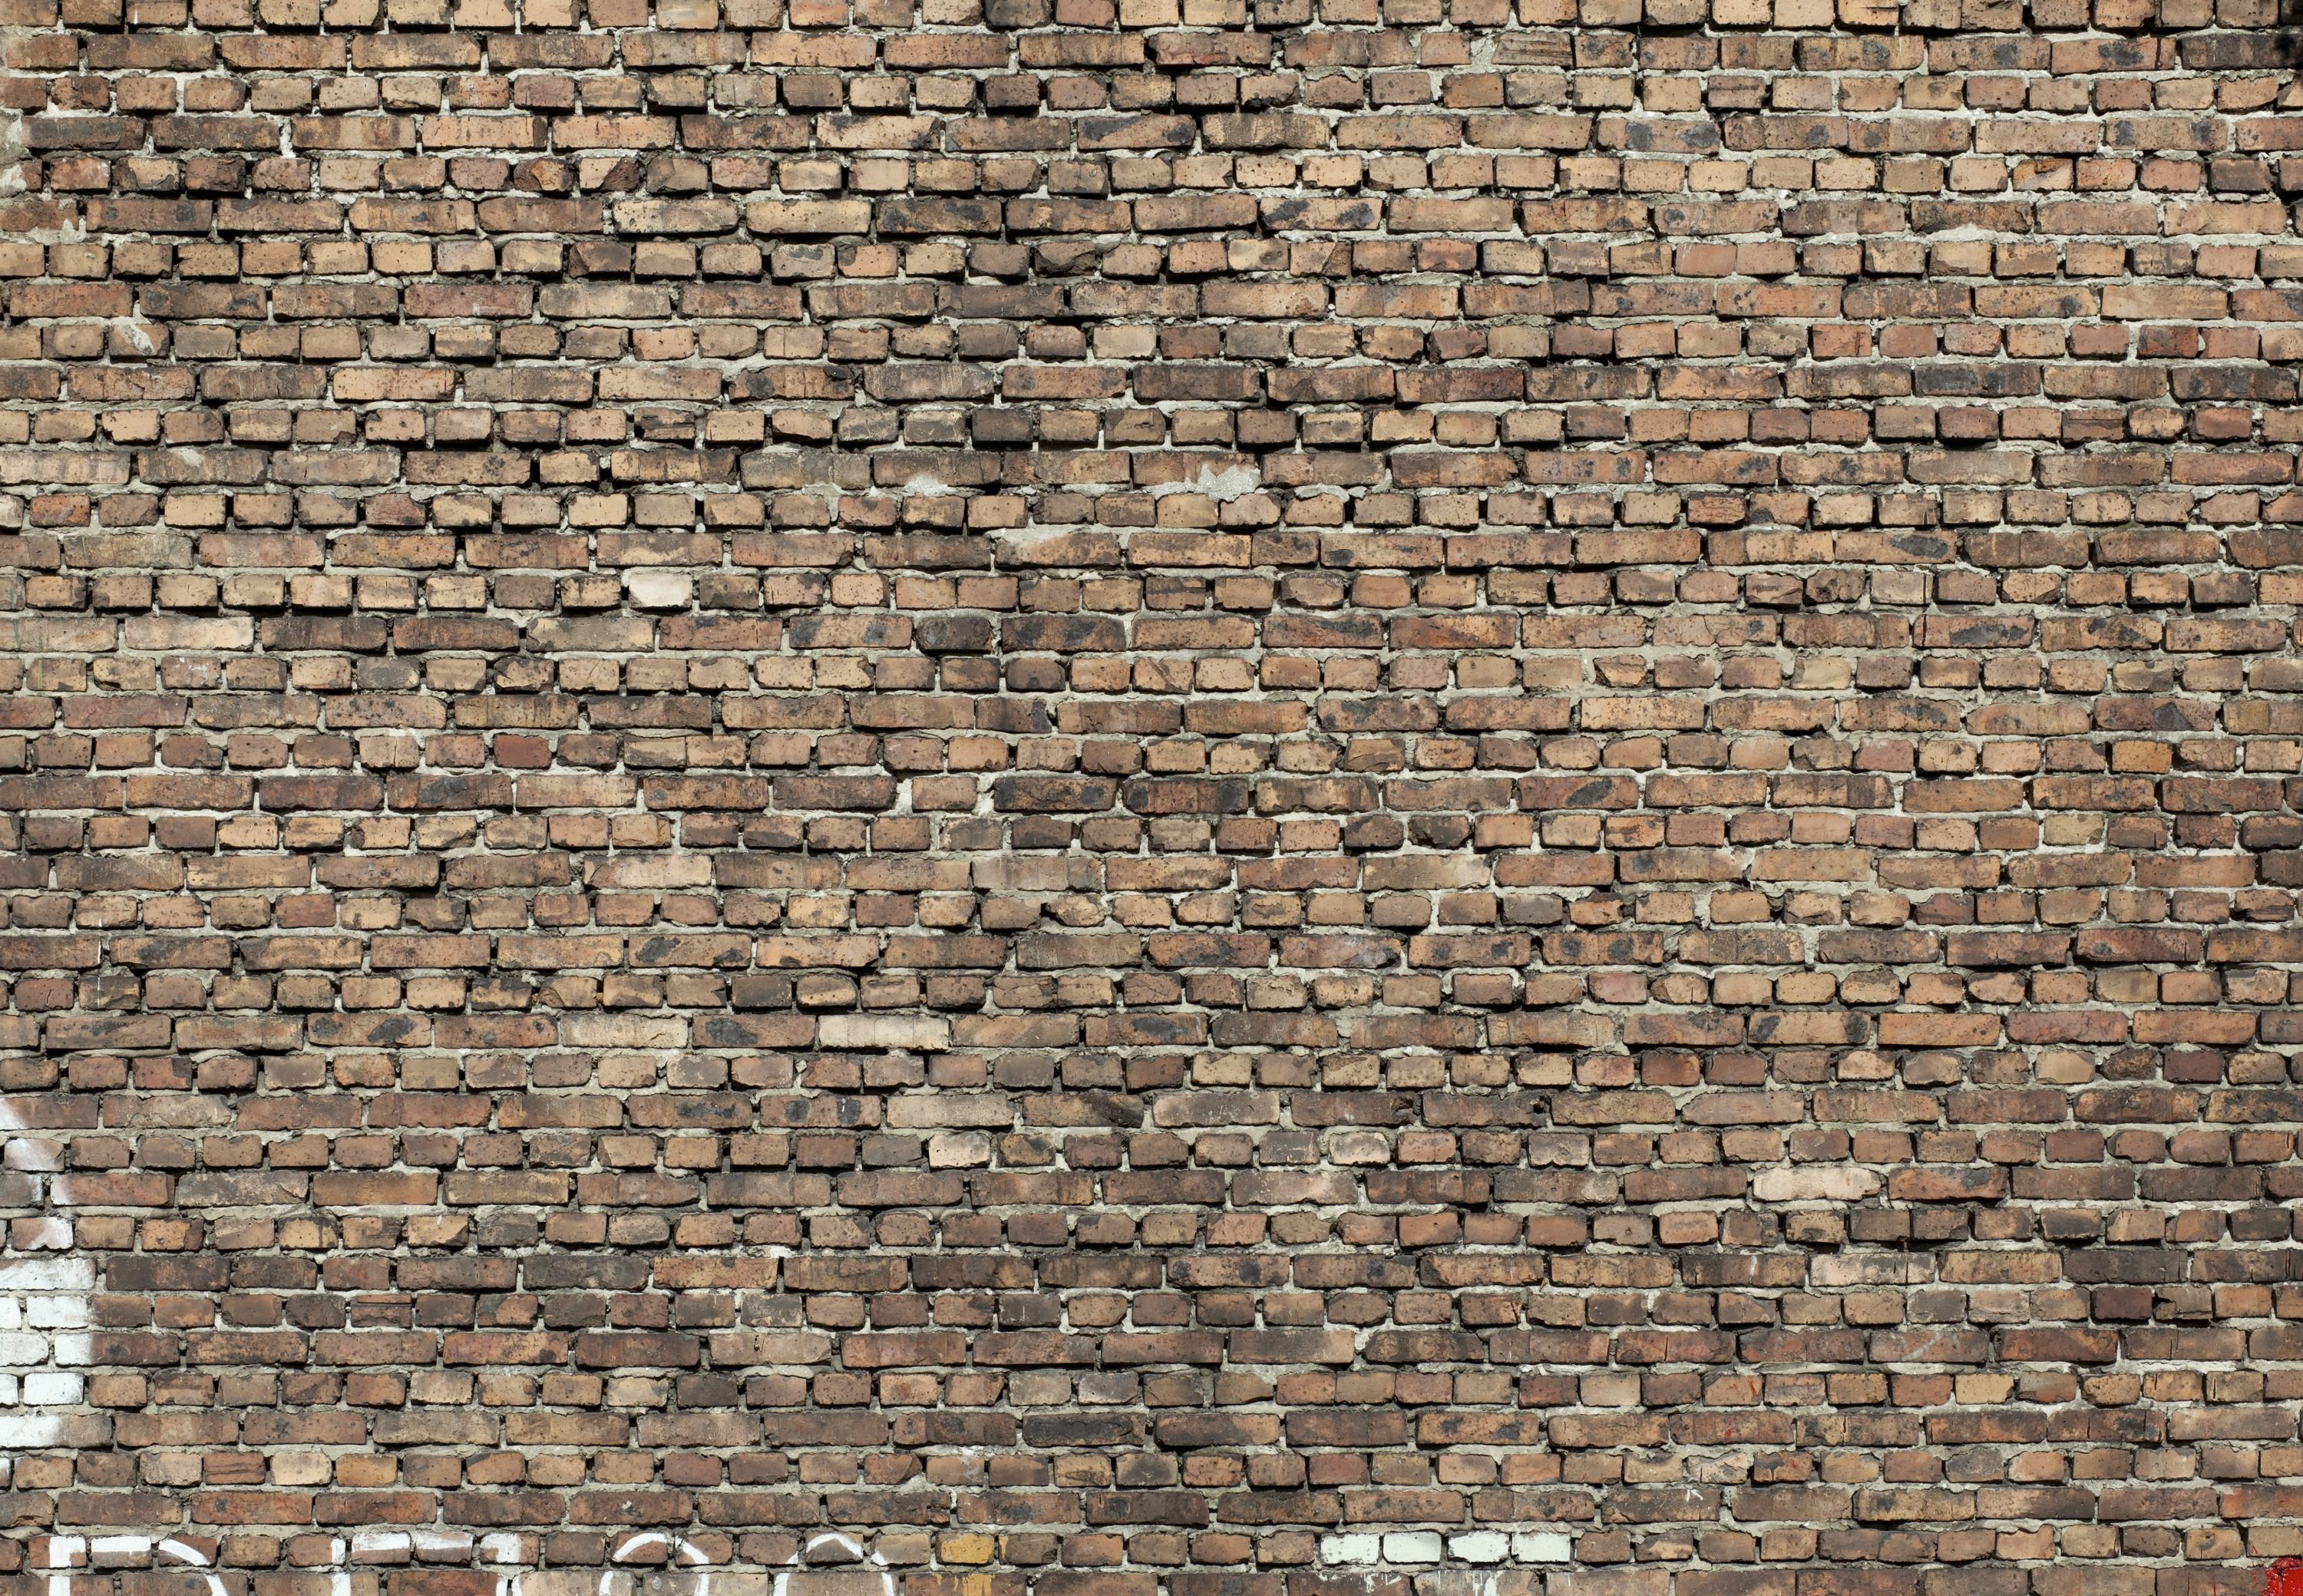 Brick Wall Texture, Photo, Image, Bricks, Brick Masonry, Bricks